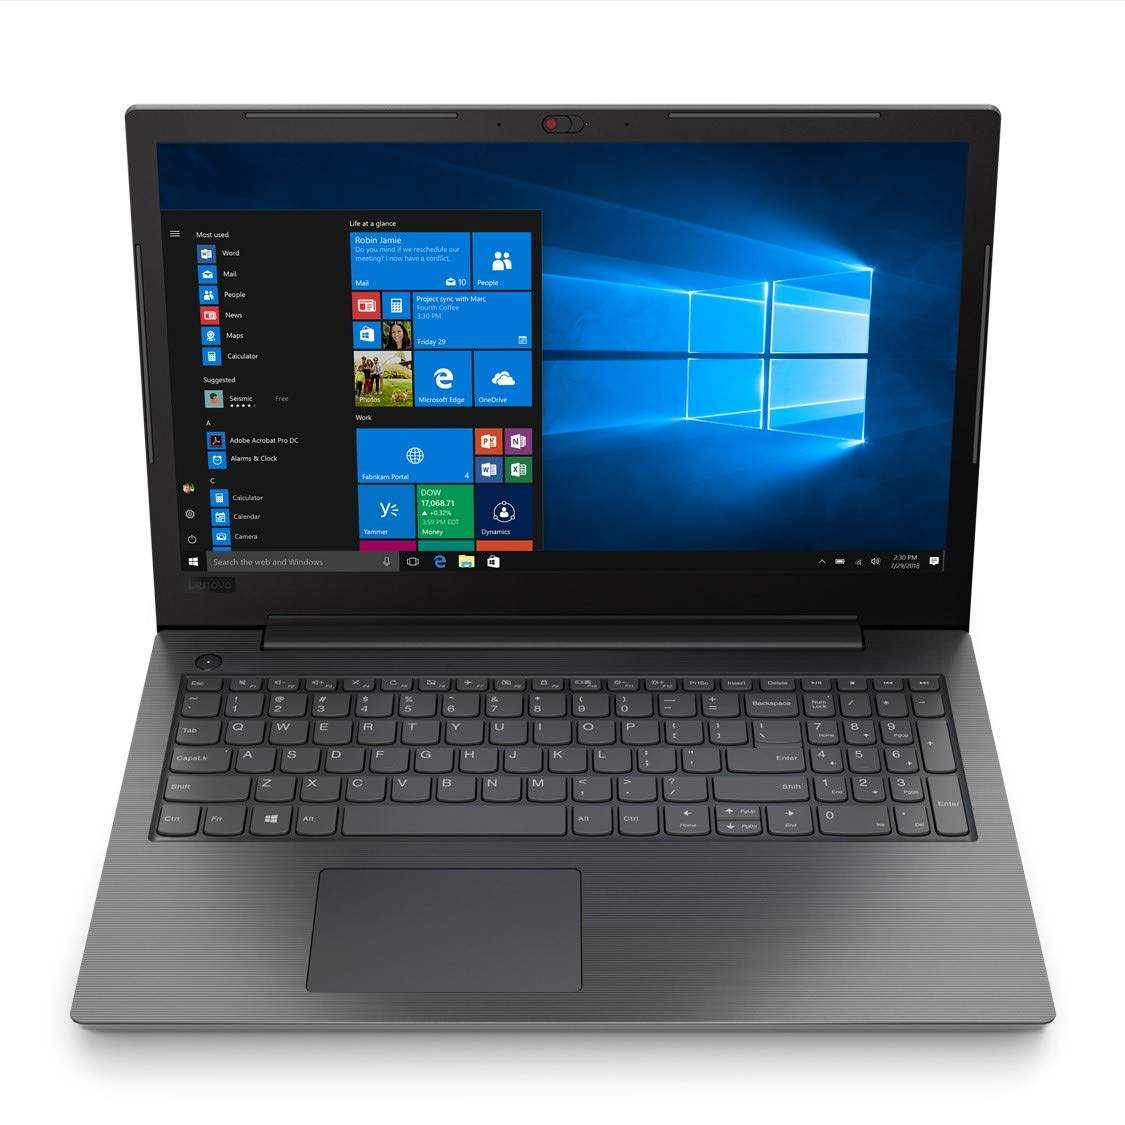 Lenovo V130 Intel Core I5 8Th Gen 15.6-Inch Full Hd Thin And Light Laptop (4Gb Ram/ 1 Tb Hdd/ Dos/ With Dvd Drive/ Grey/ 1.80 Kg), 81Hna019Ih